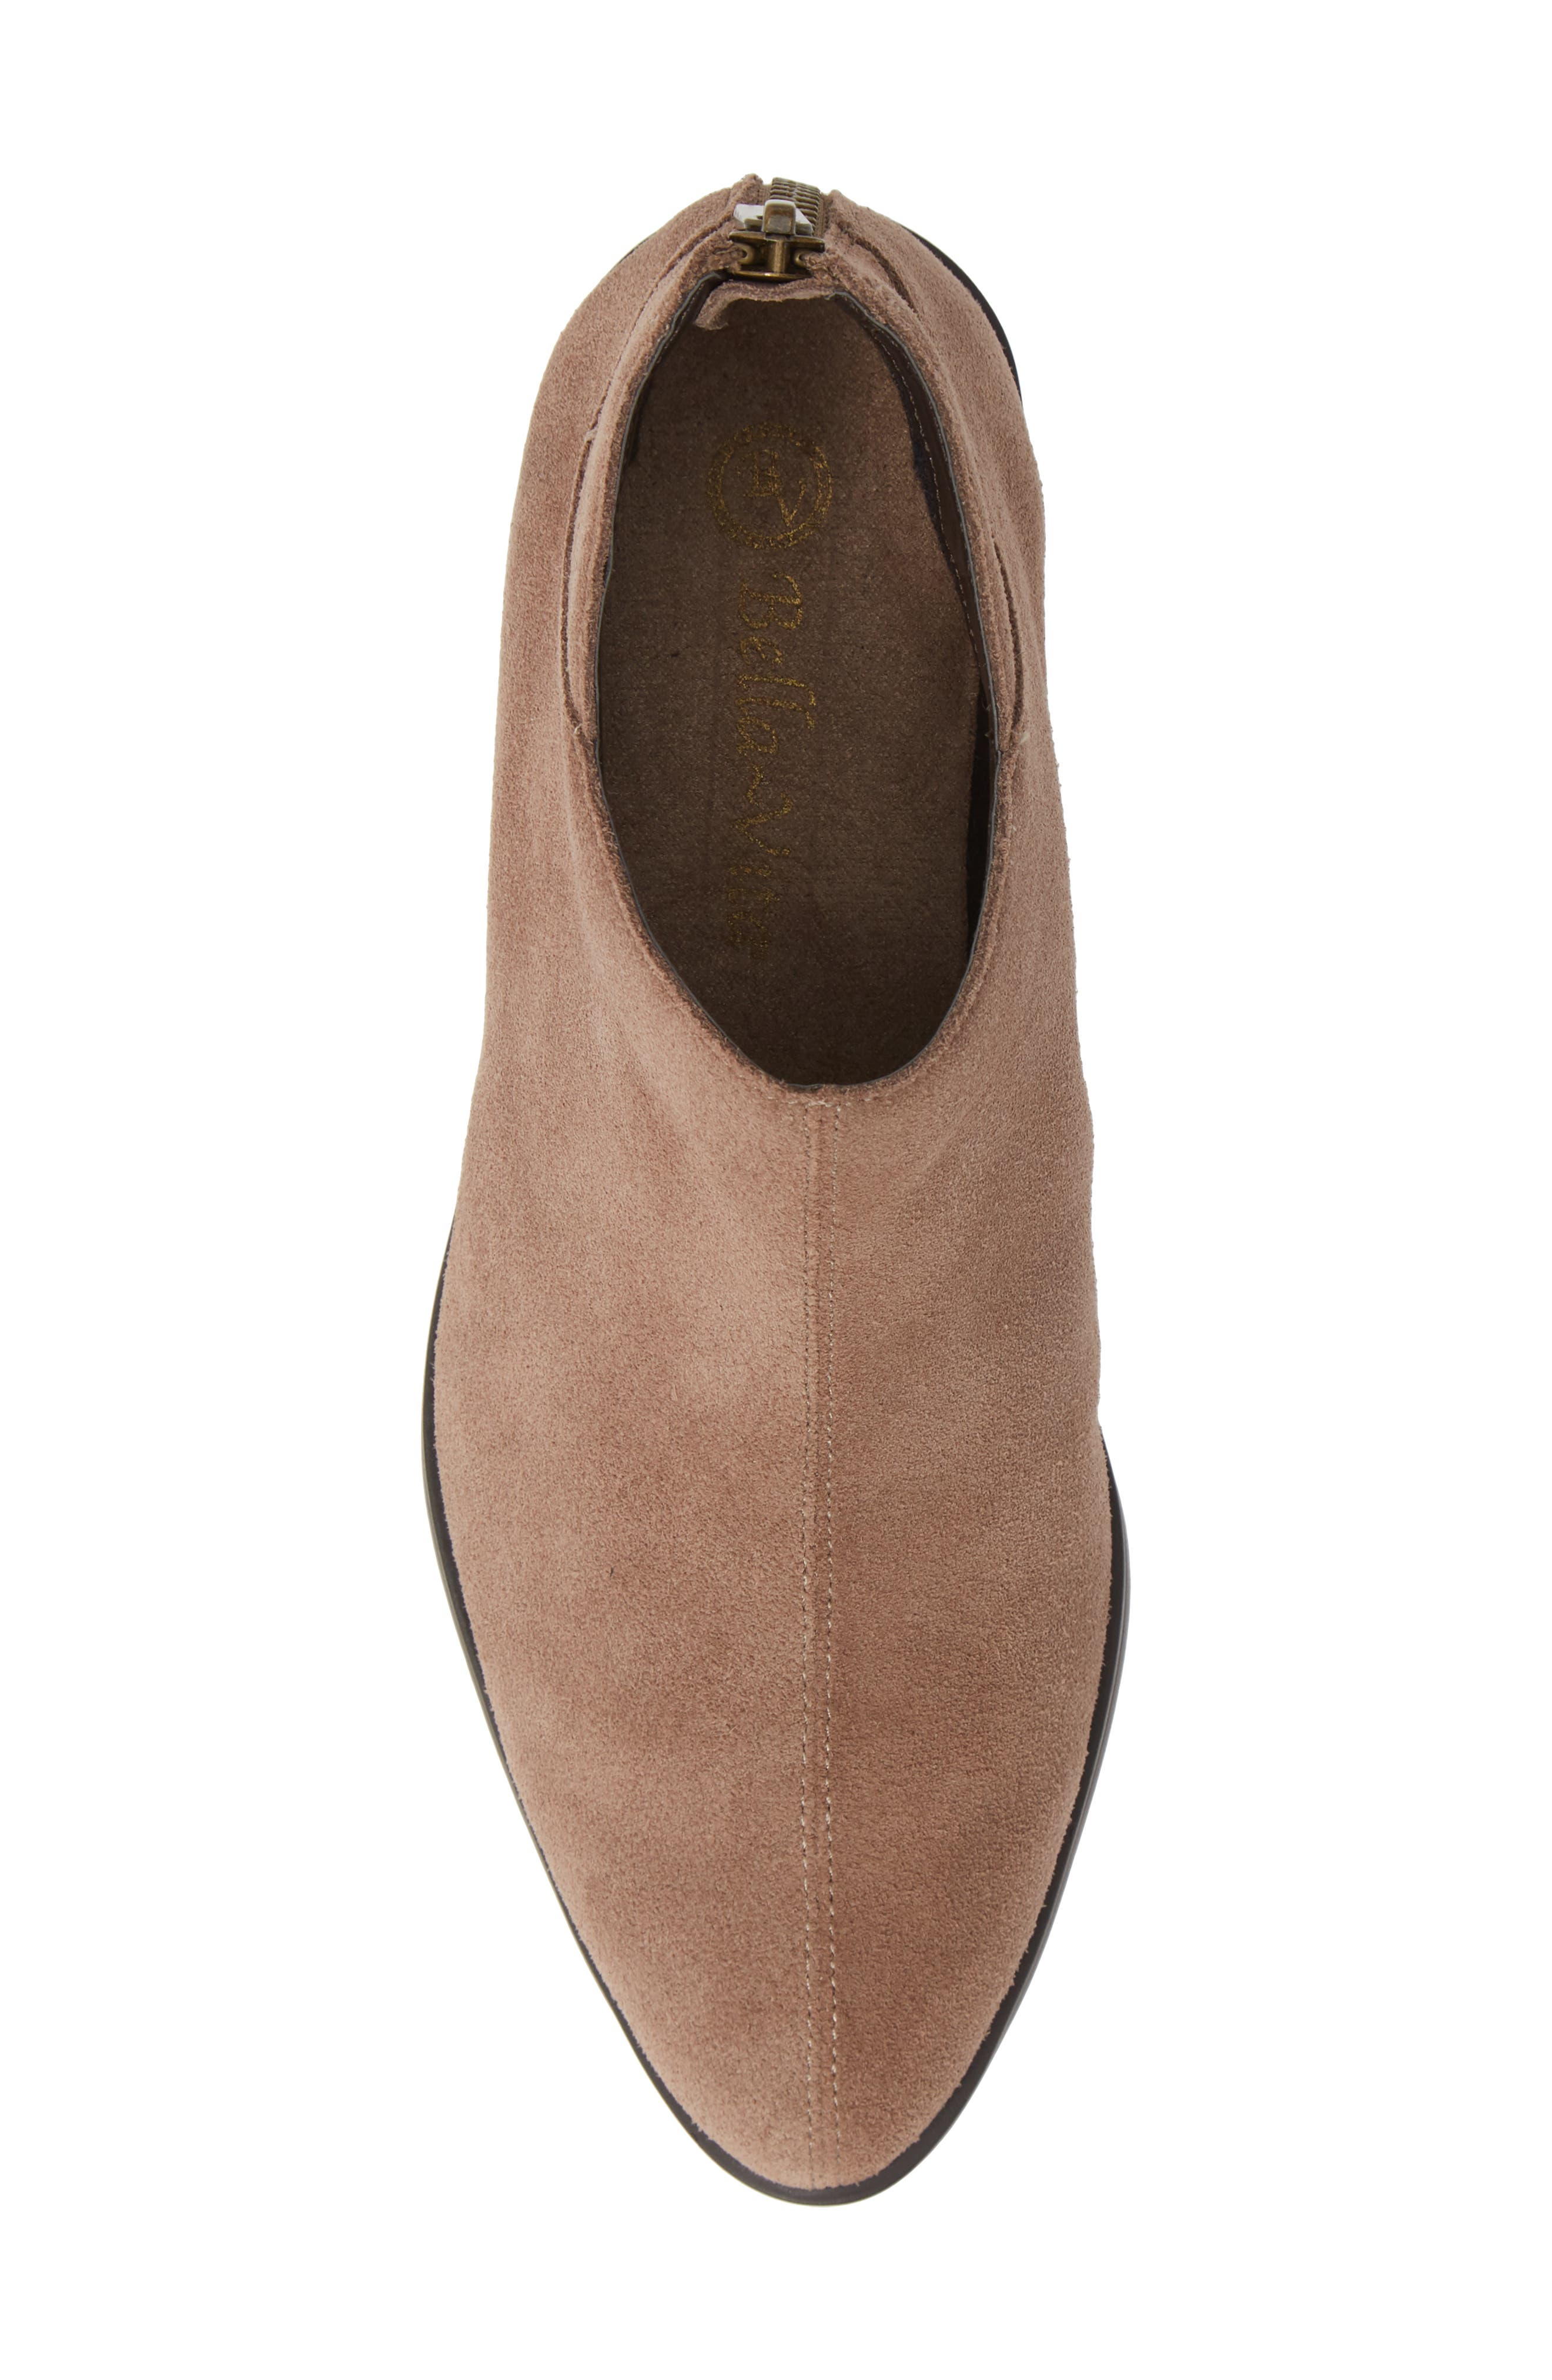 Haven Ankle Bootie,                             Alternate thumbnail 5, color,                             ALMOND SUEDE